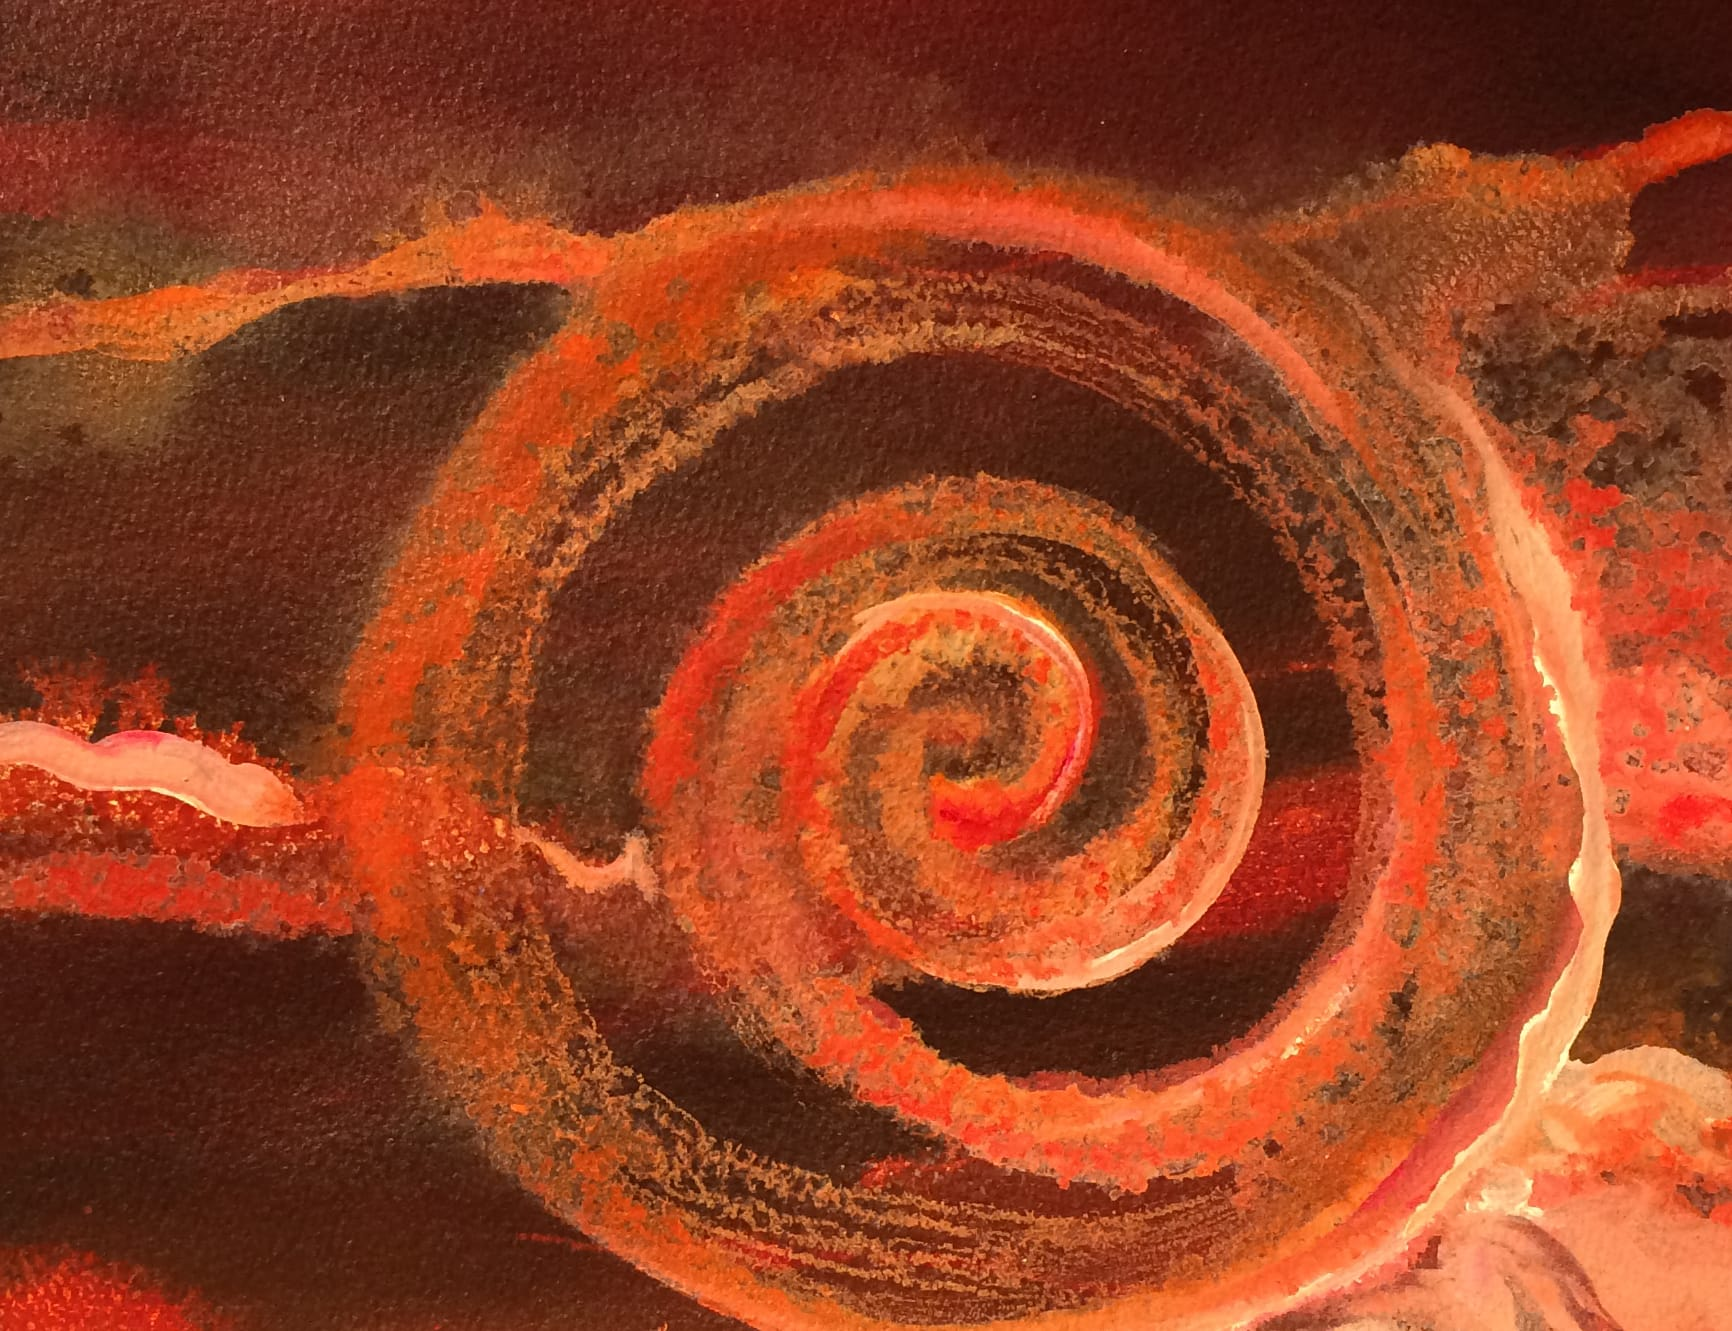 glowing orange spiral on deep red background, painting by Lynne Baur